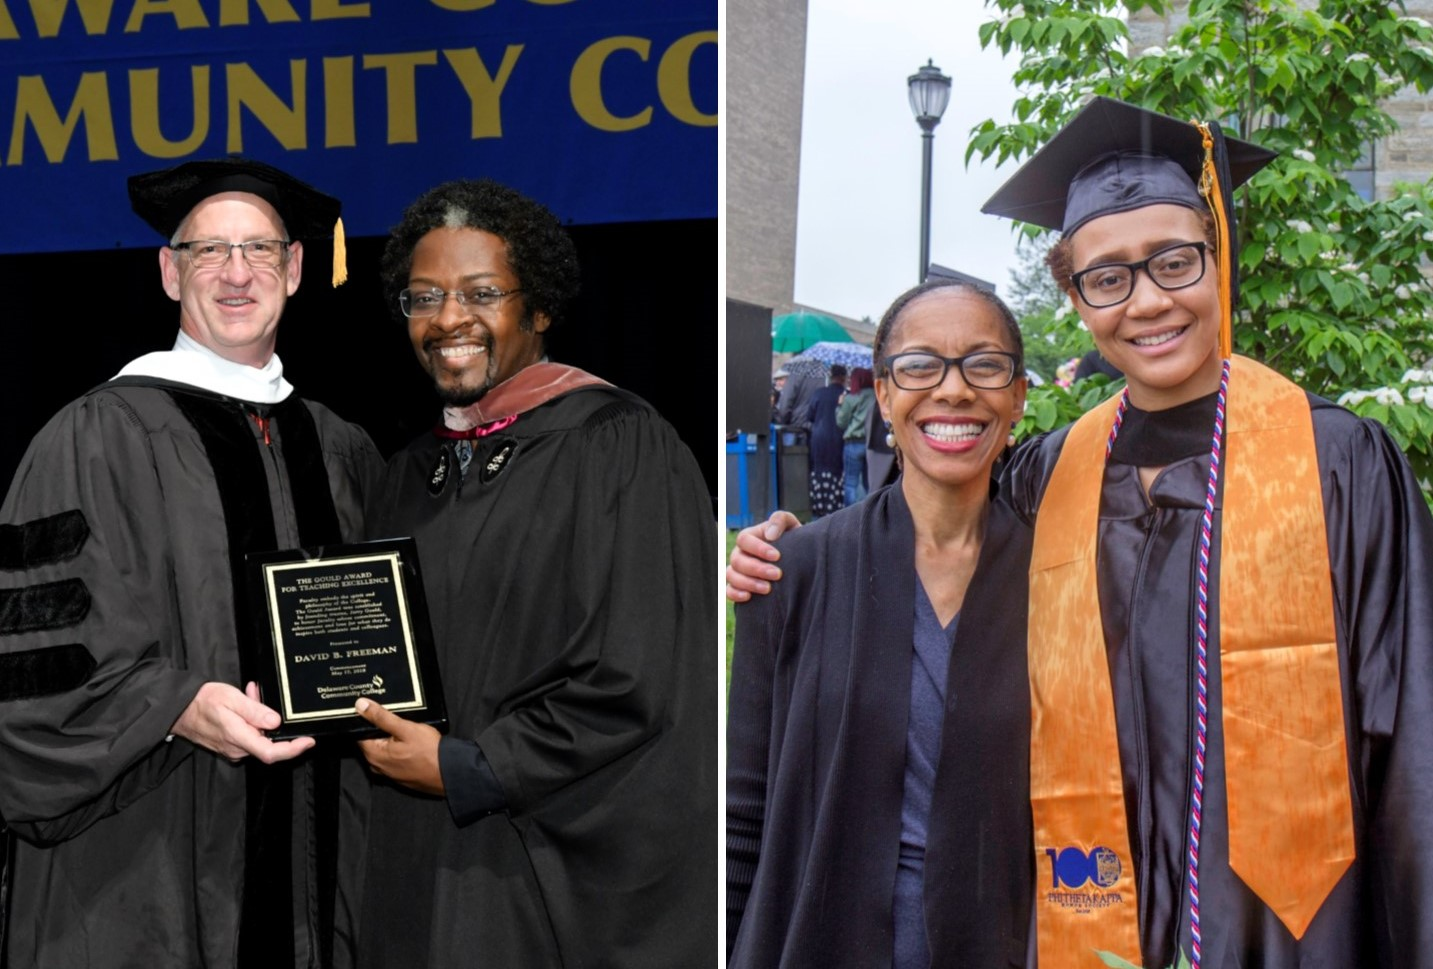 Two Profs at Delaware County Community College Receive Awards for Excellence in Teaching